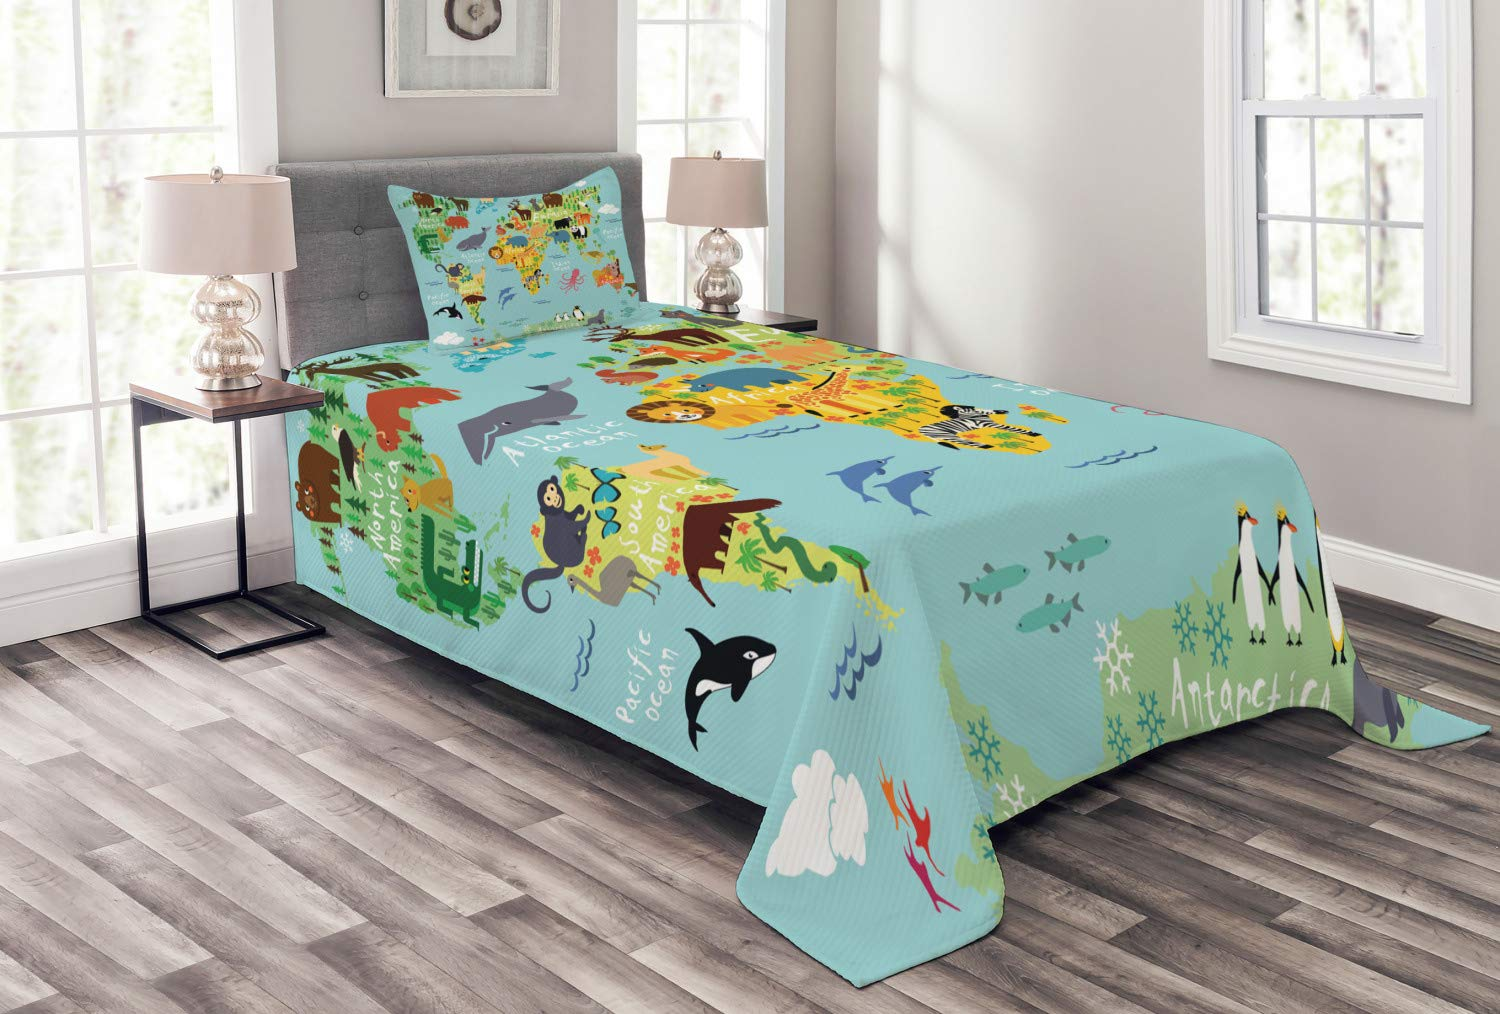 Ambesonne Wanderlust Bedspread Set Twin Size, Animal Map of The World for Children Kids Cartoon Mountains Forests, Decorative Quilted 2 Piece Coverlet Set with Pillow Sham, Pale Blue Yellow Green